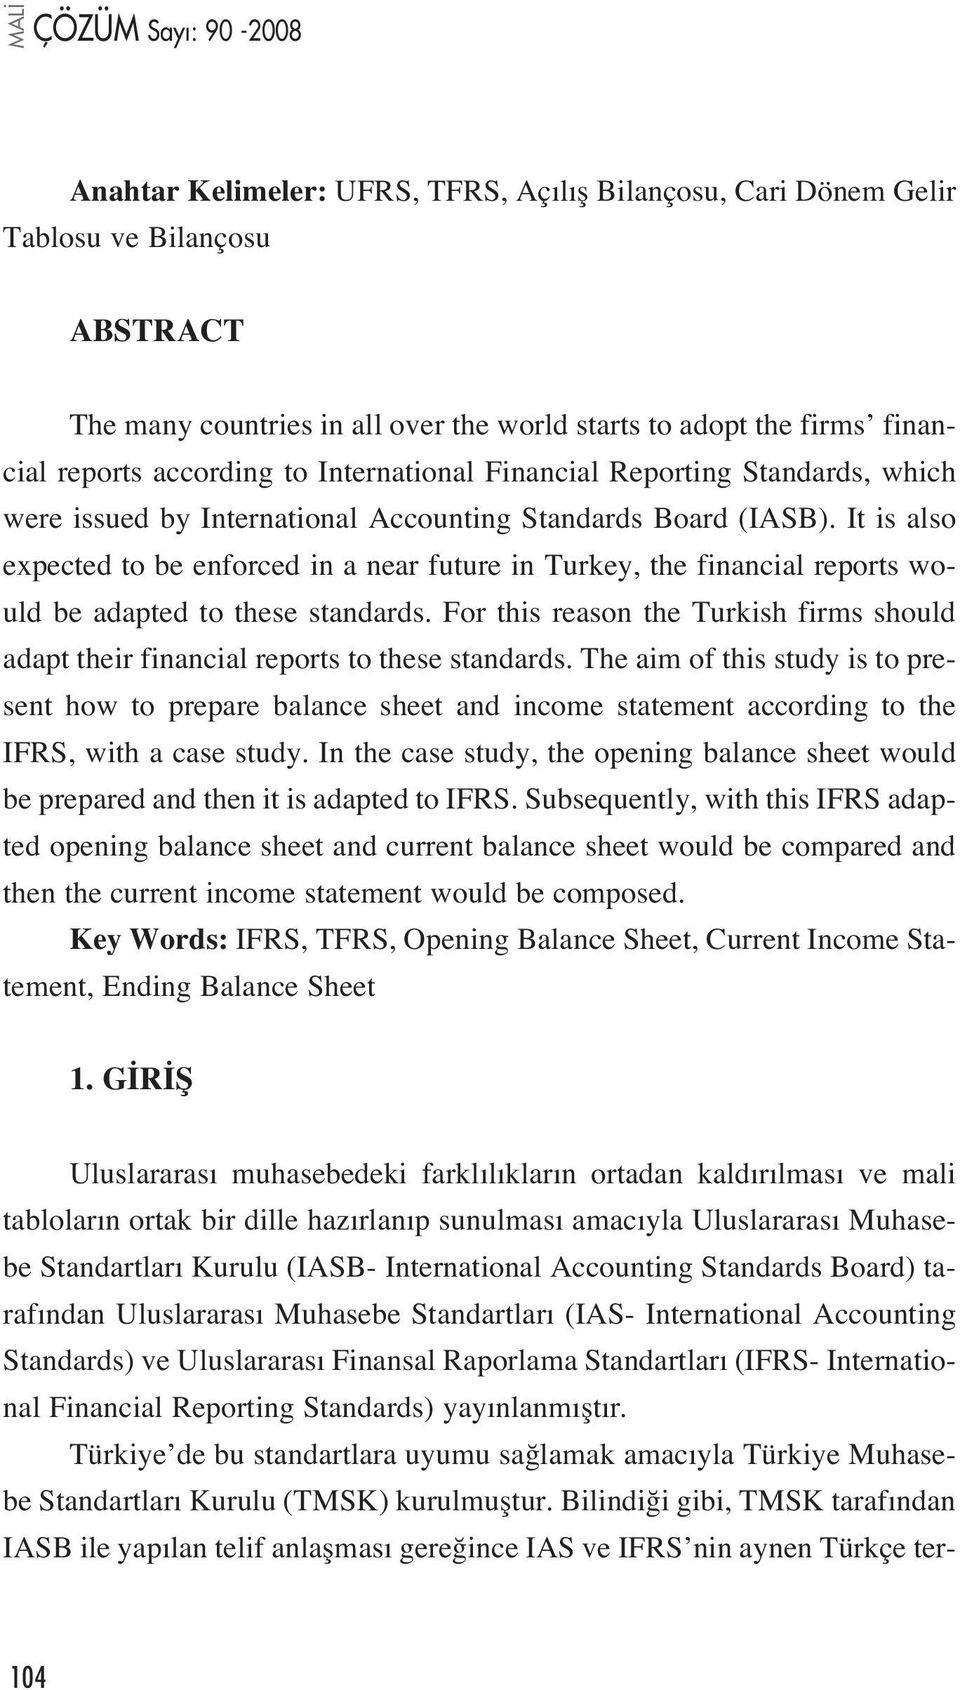 It is also expected to be enforced in a near future in Turkey, the financial reports would be adapted to these standards.